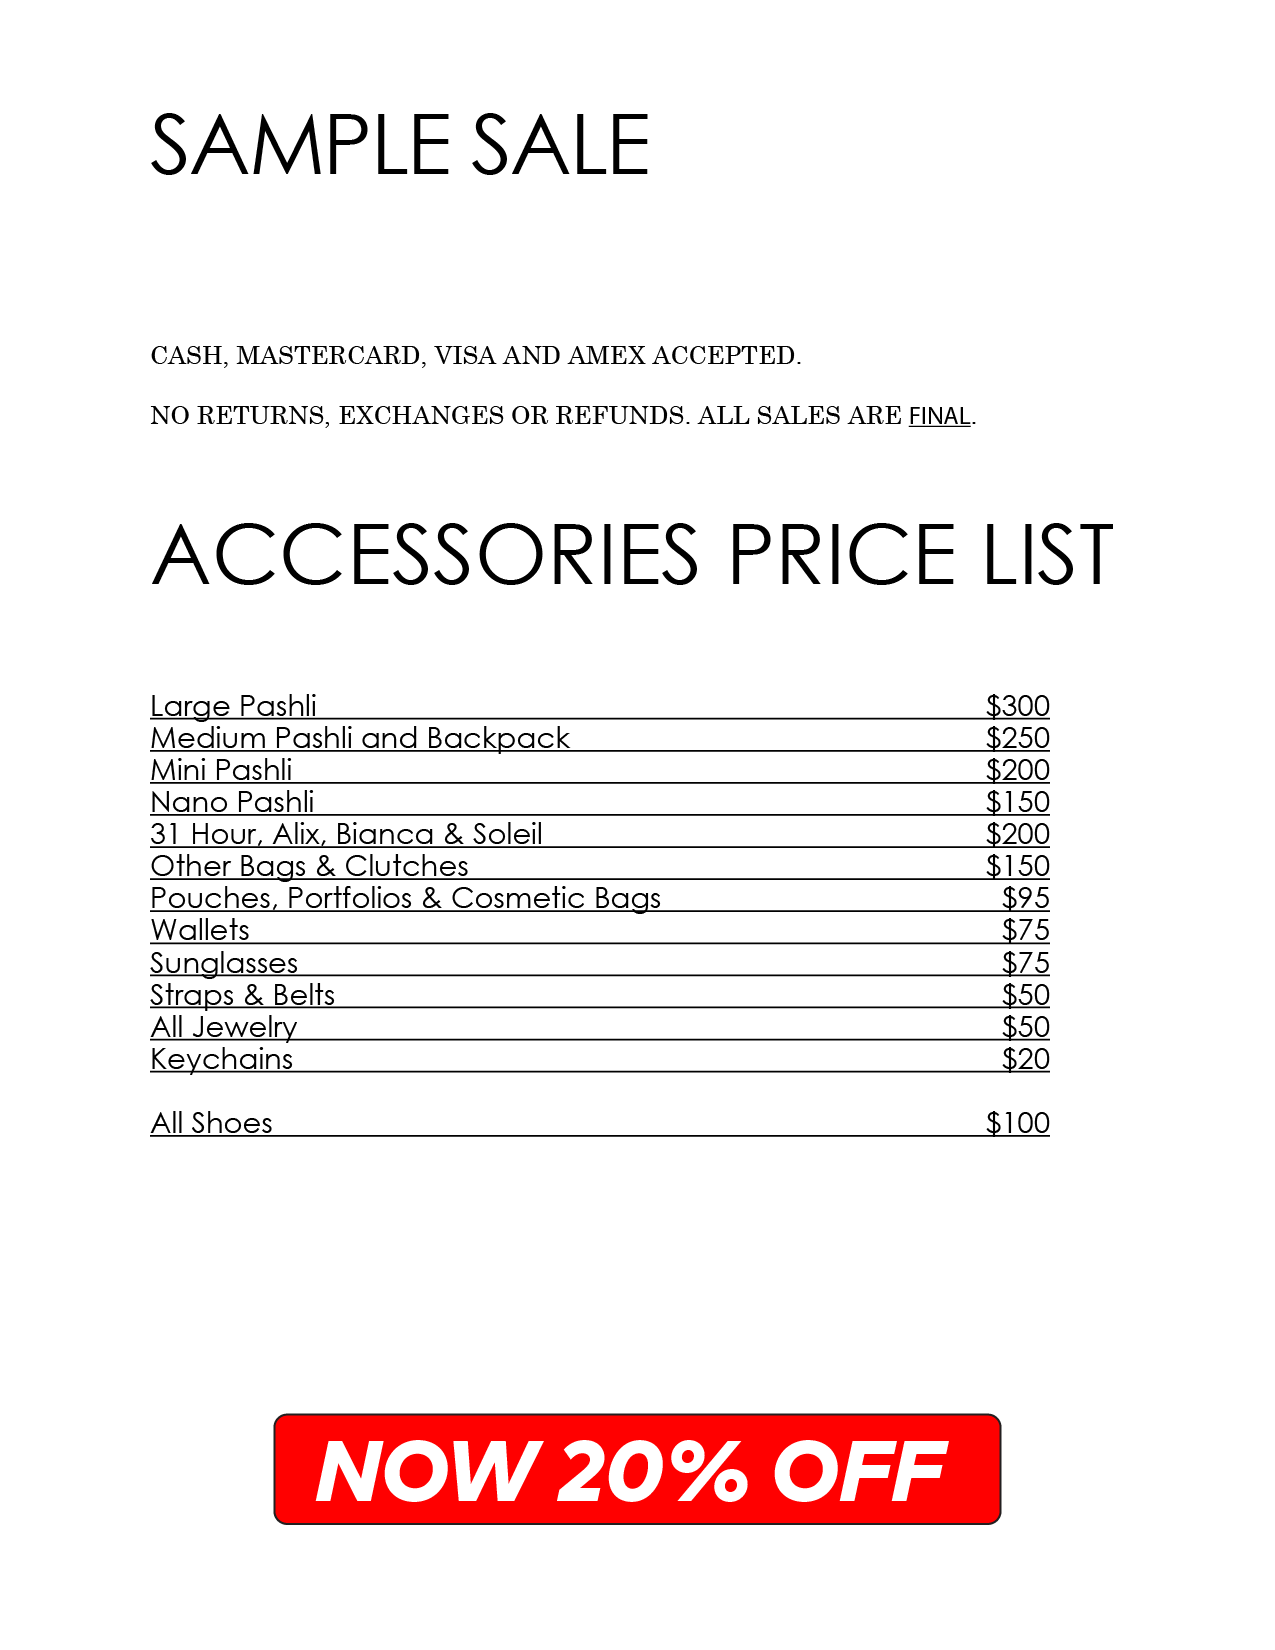 Sample Sale ACCY Price List April 2019 (002)-01.png